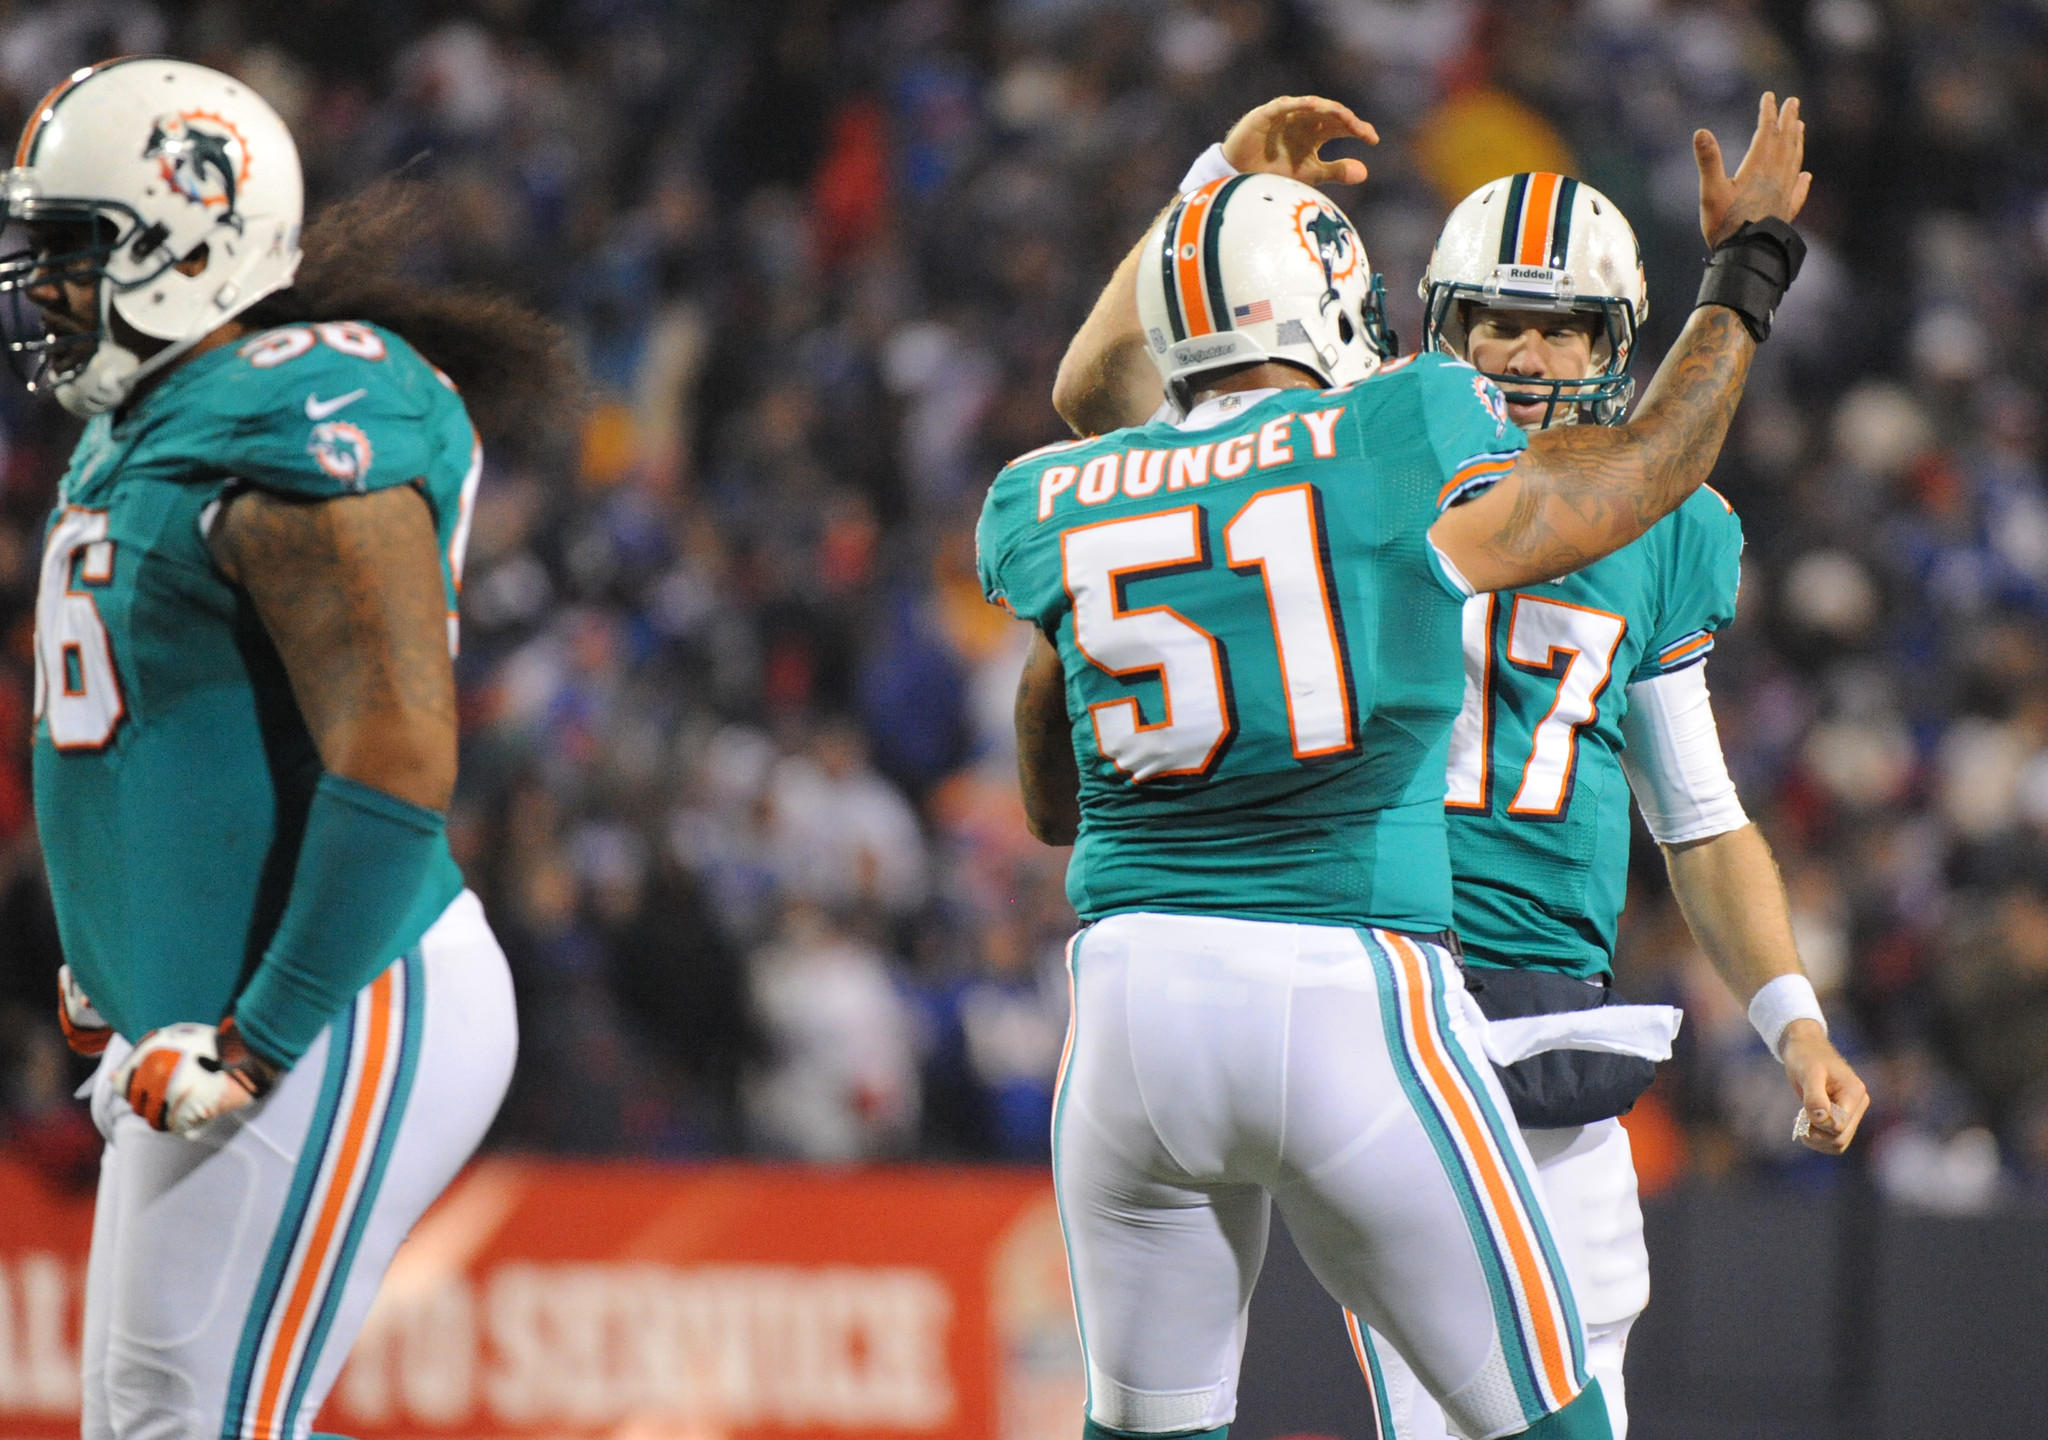 Would a contract extension for Mike Pouncey make sense